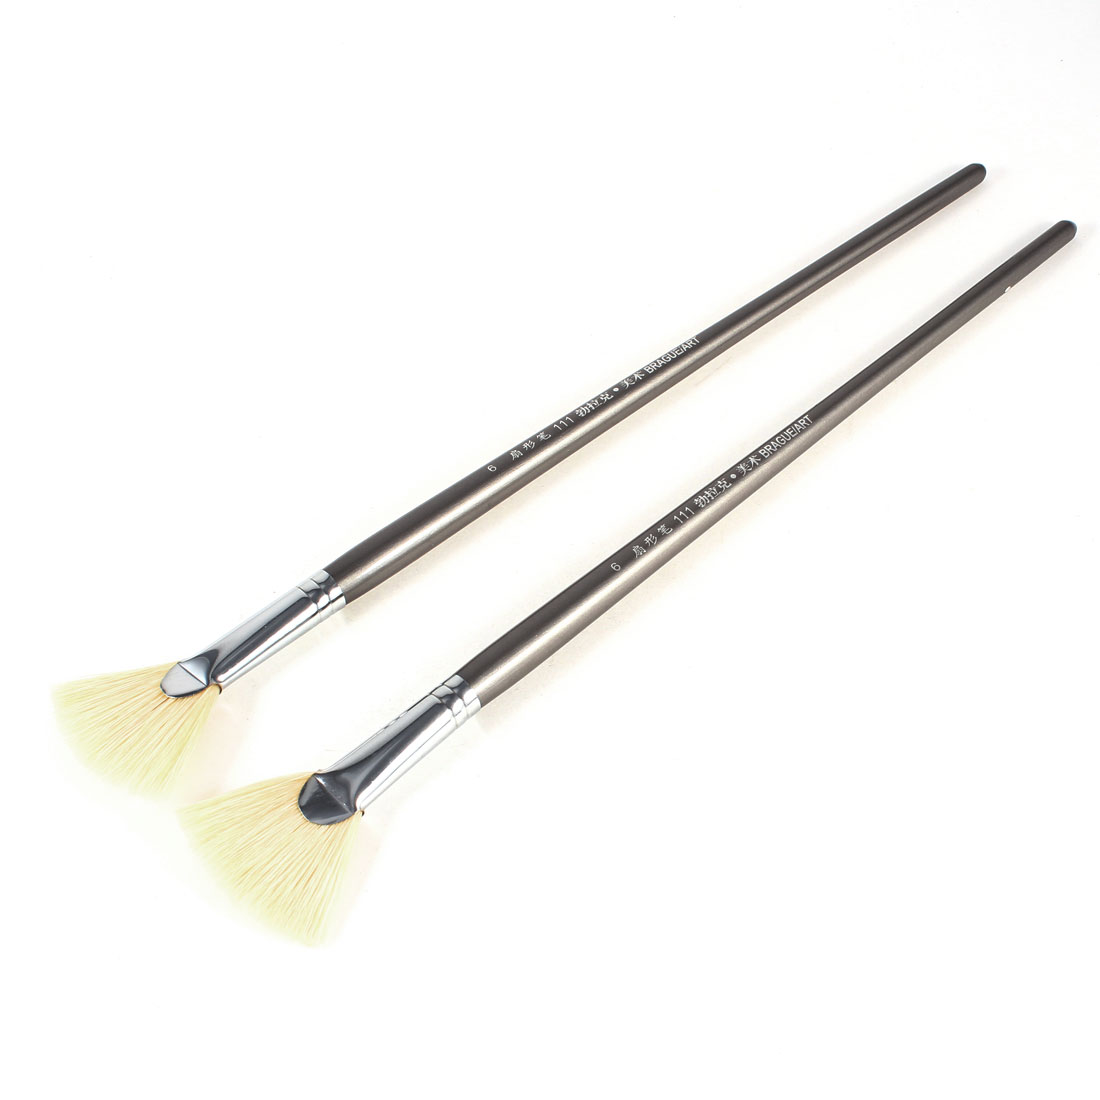 "2 Pcs Gray Plastic Handle 1.8"" Faux Fur Head Painting Tool Paint Brush"